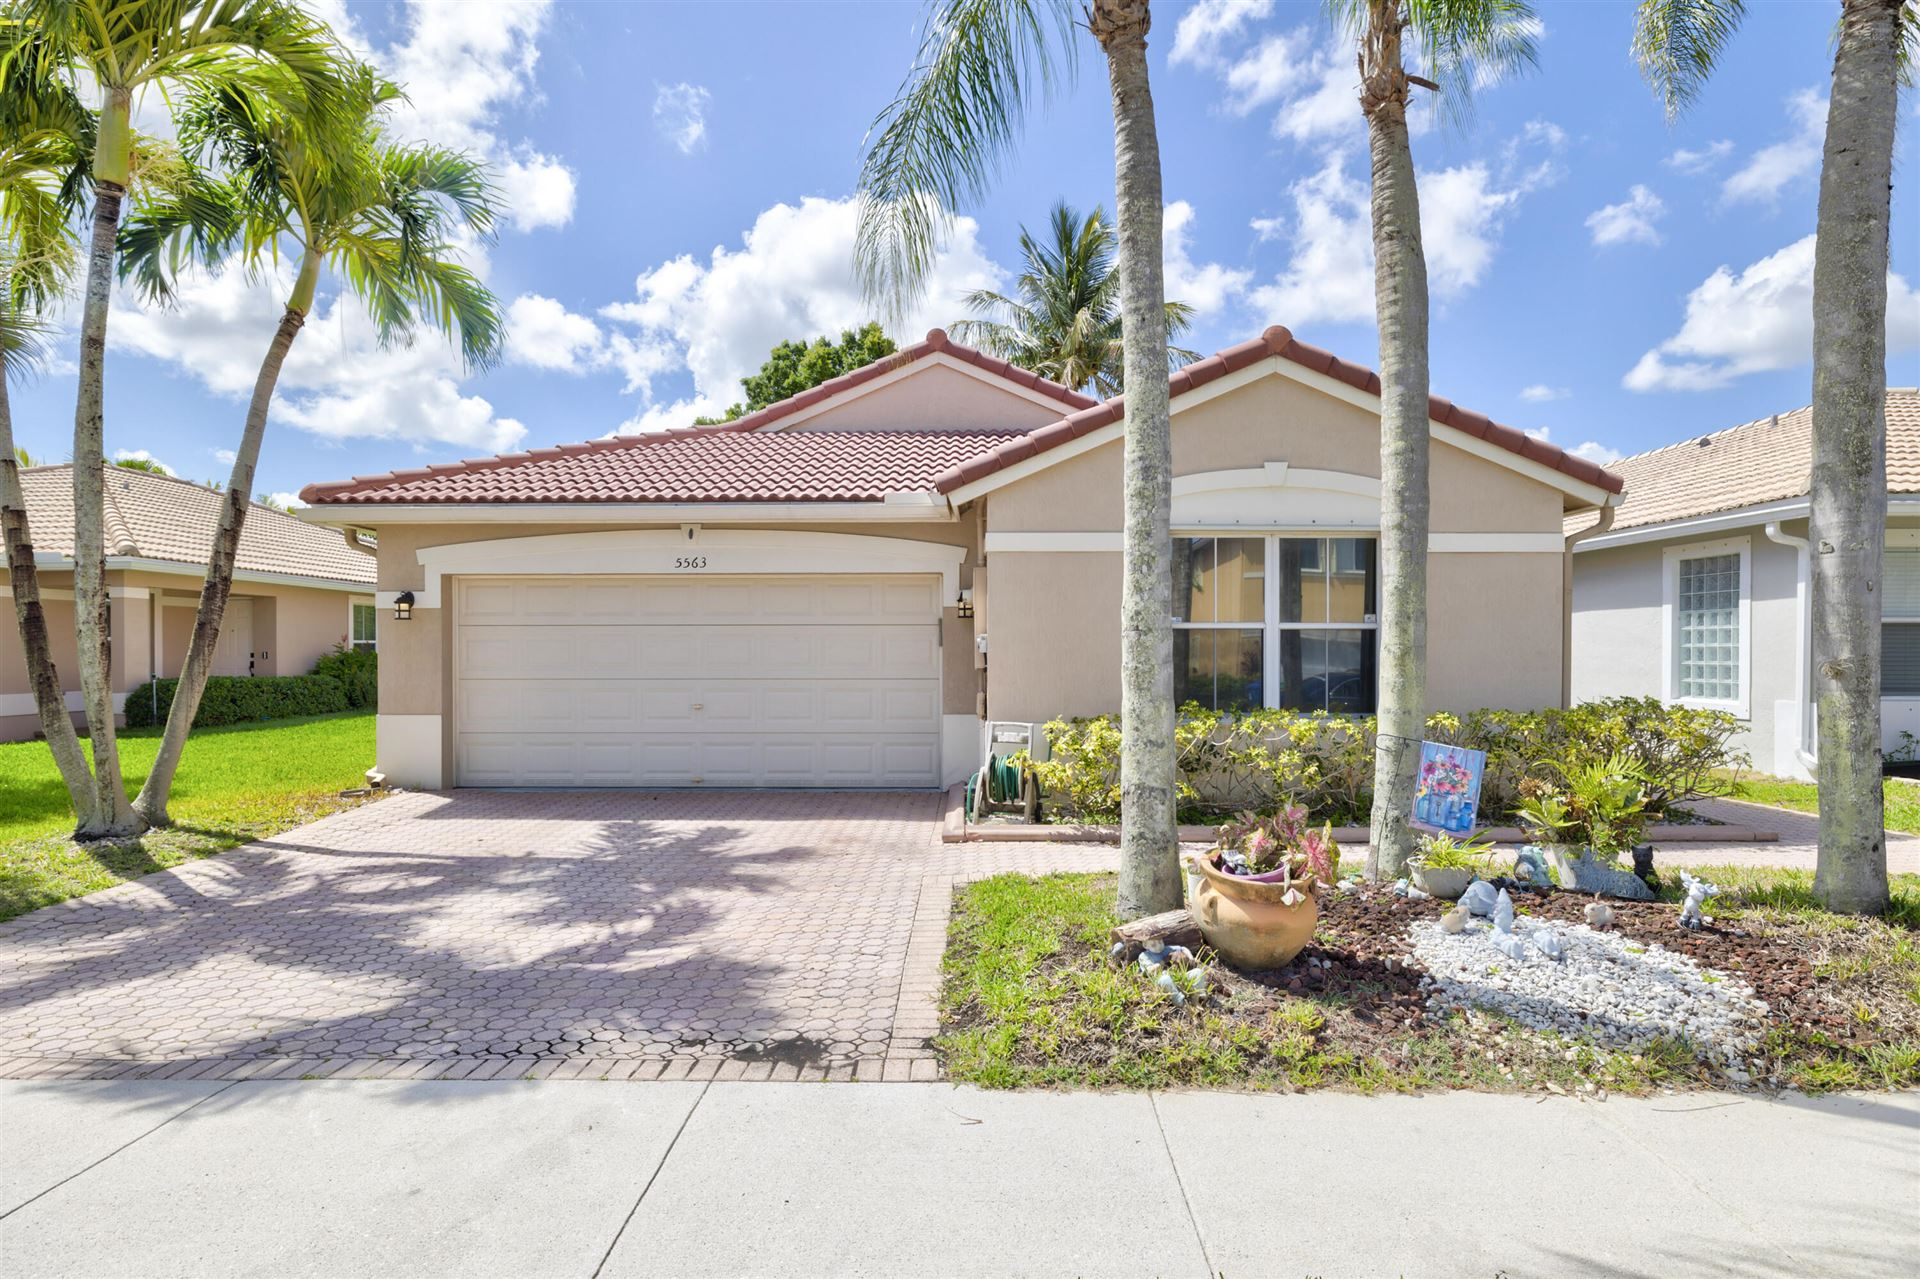 5563 NW 125th Terrace, Coral Springs, FL 33076 - MLS#: RX-10722911